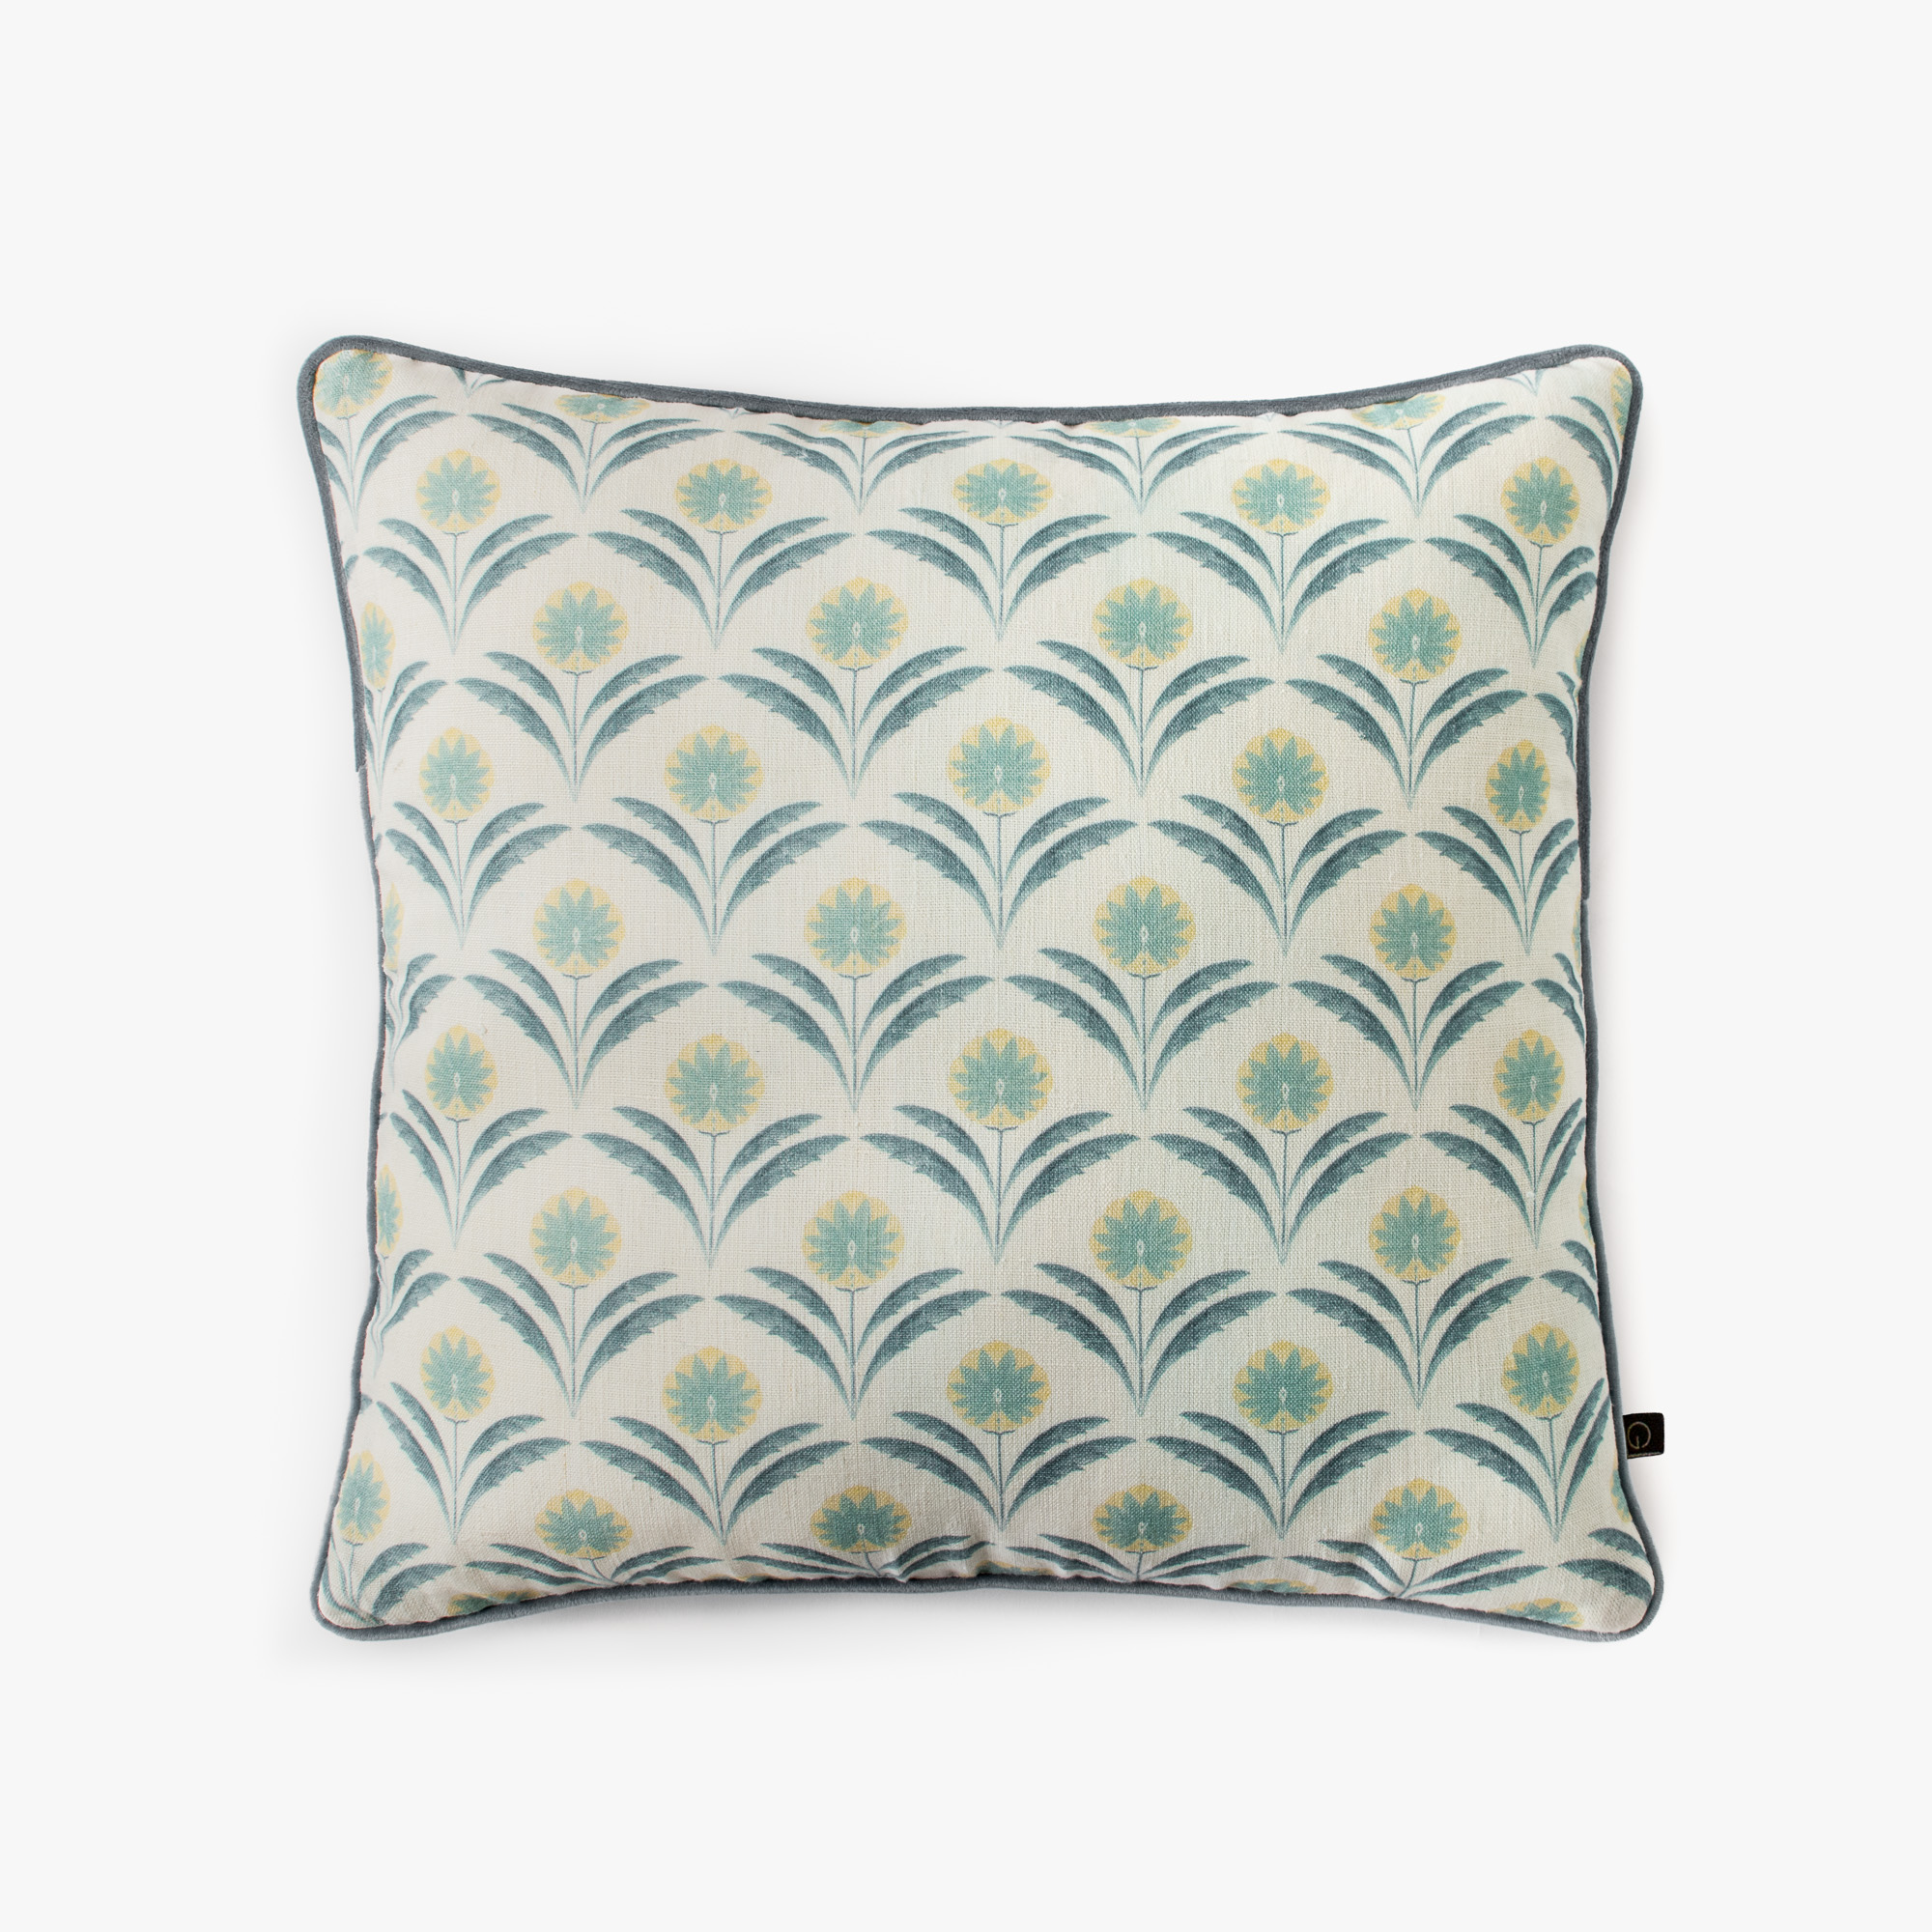 PALACE BAGH CUSHION COVER